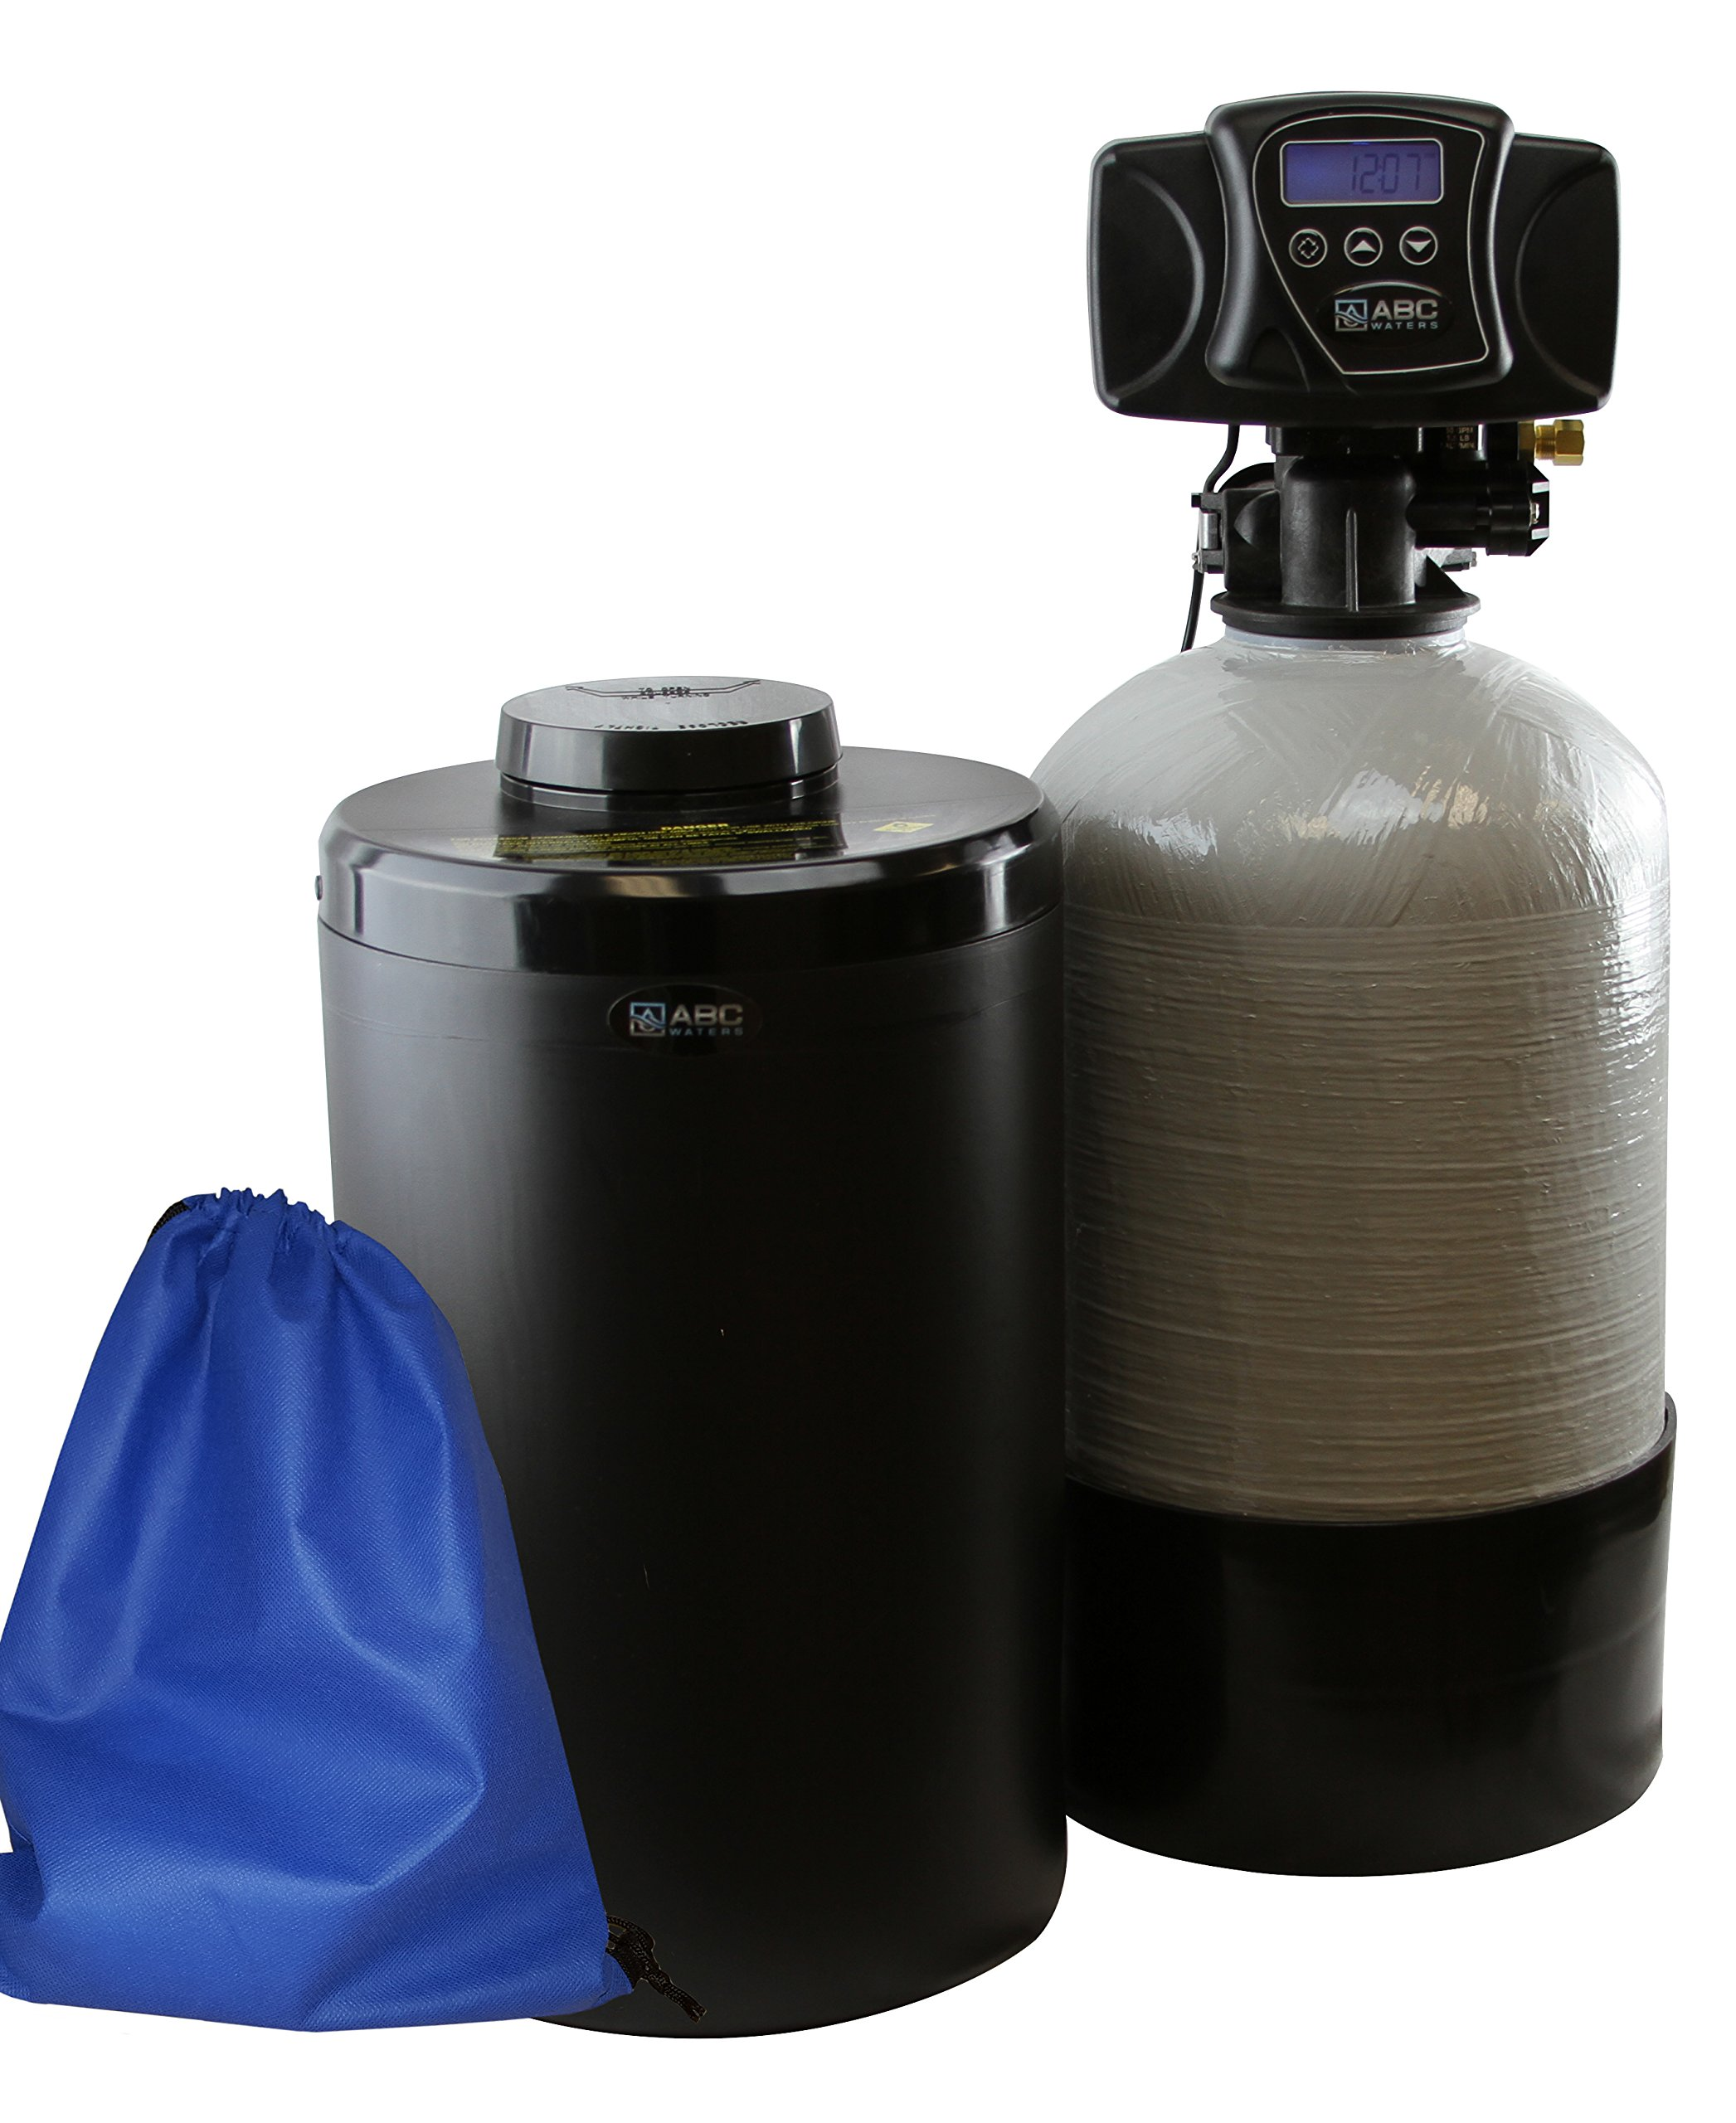 ABCwaters built Compact Fleck 5600sxt 16k TC Water Softener System - Perfect for RVs, Mobile Homes, Tiny Homes, Condo & Cabins - Program & It Runs Automatically!